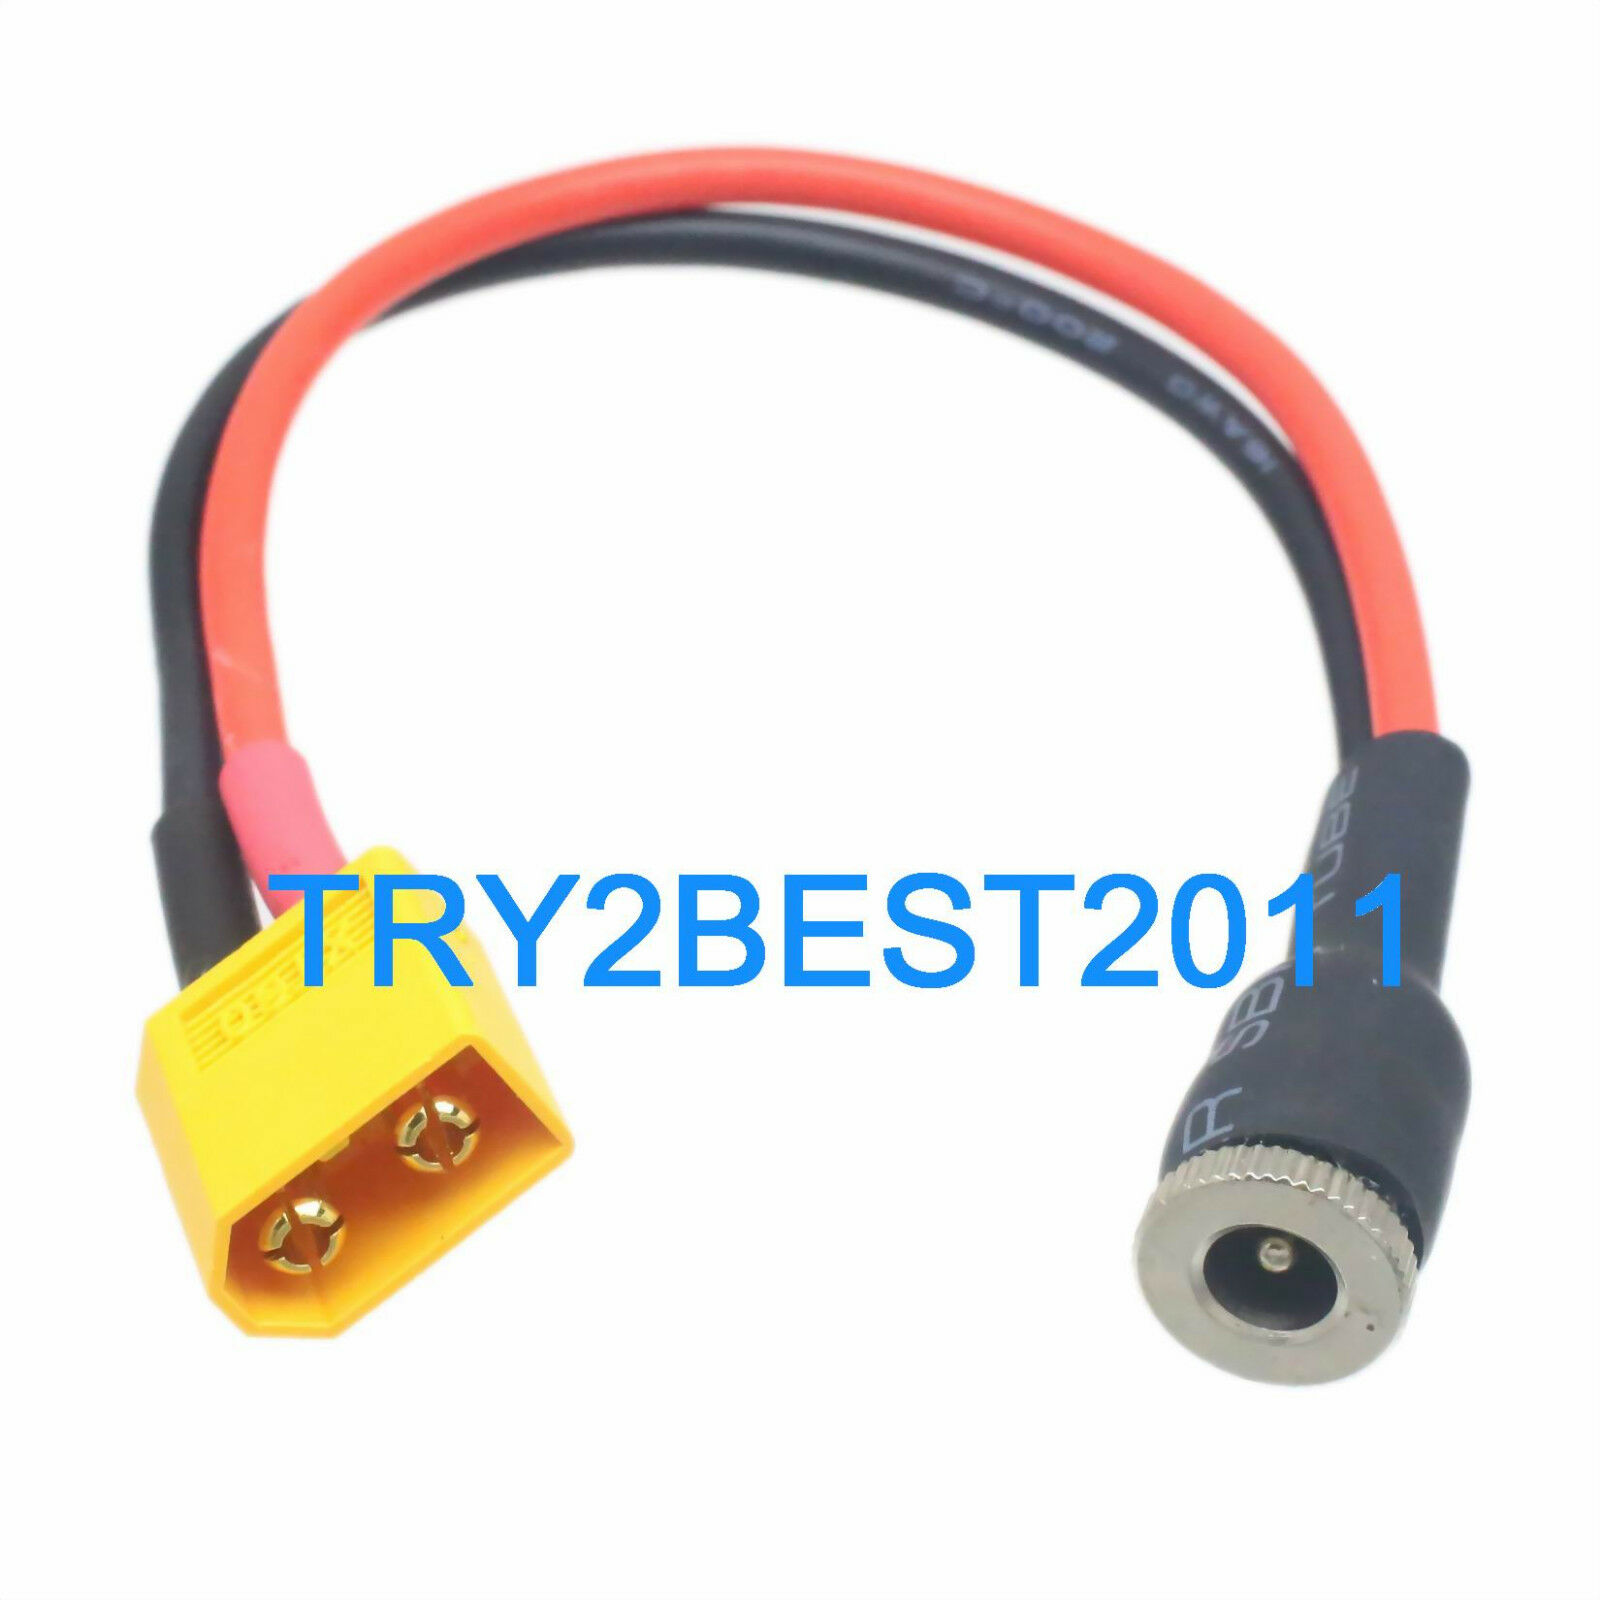 Xlr Battery Charger Wiring Diagram Electrical Diagrams Hoveround E Bike Custom U2022 Powerwise